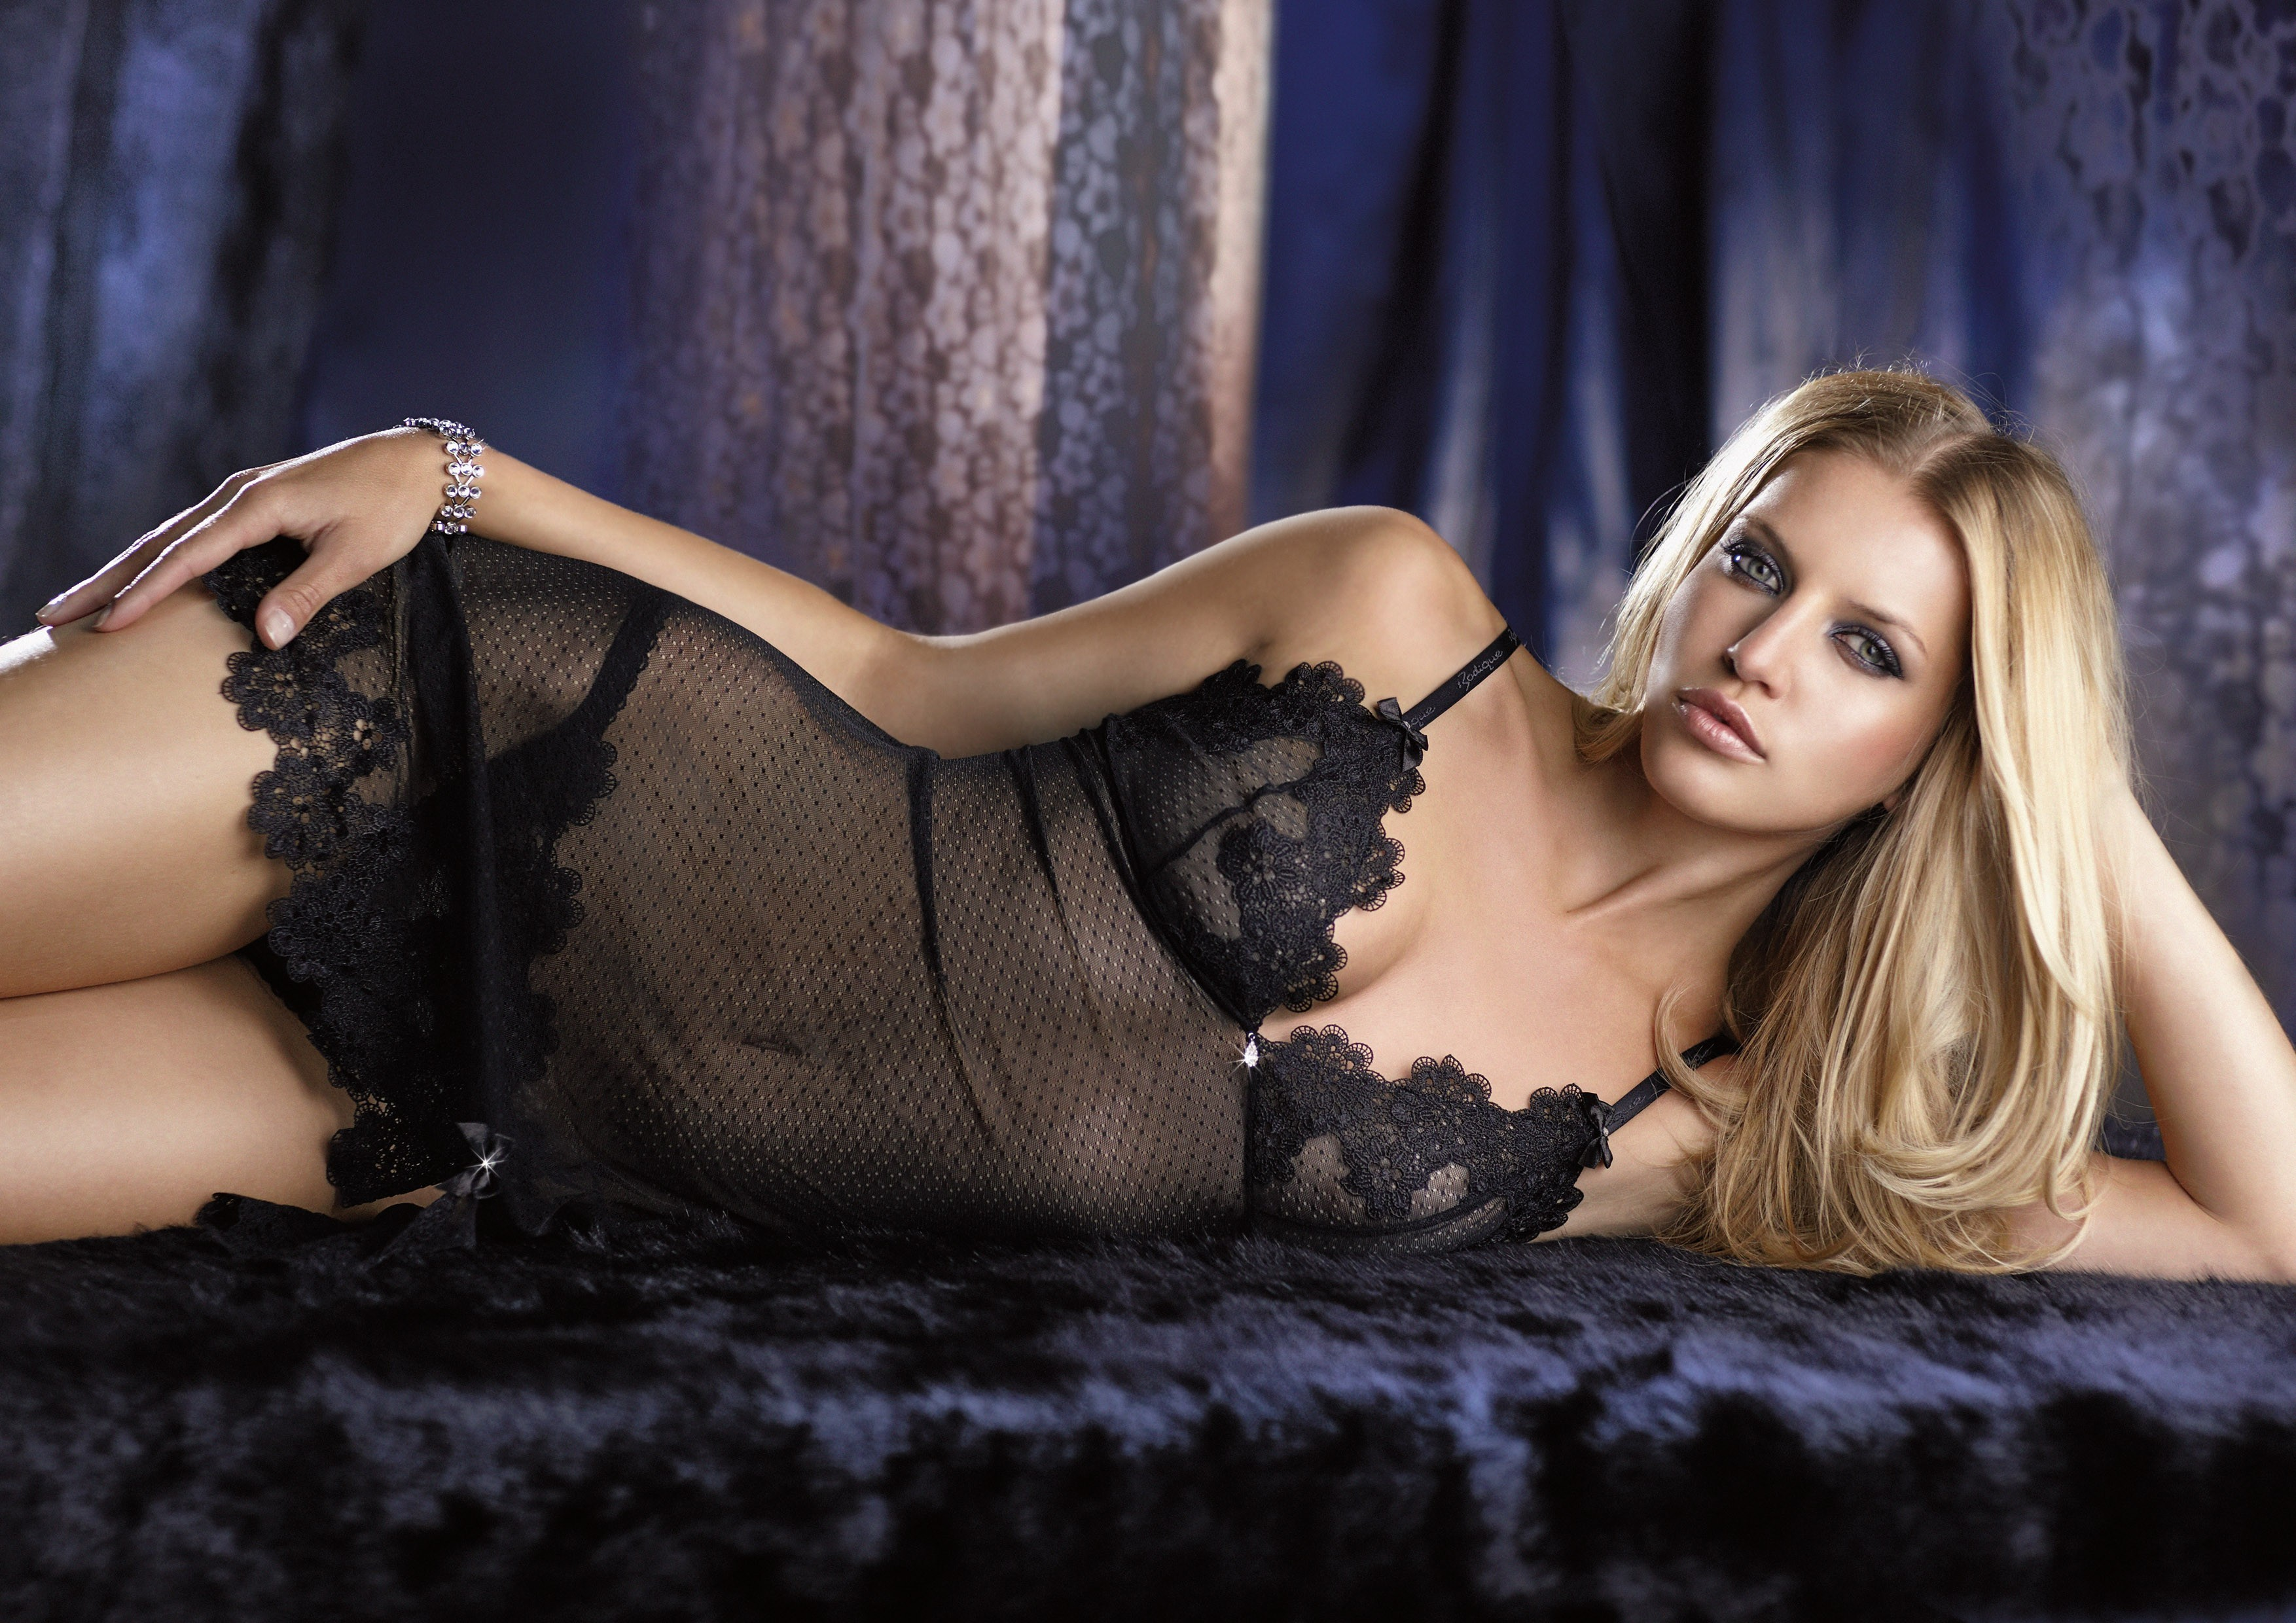 Gorgeous blonde Holly Taylor showing it all in black erotic lingerie № 337928 бесплатно